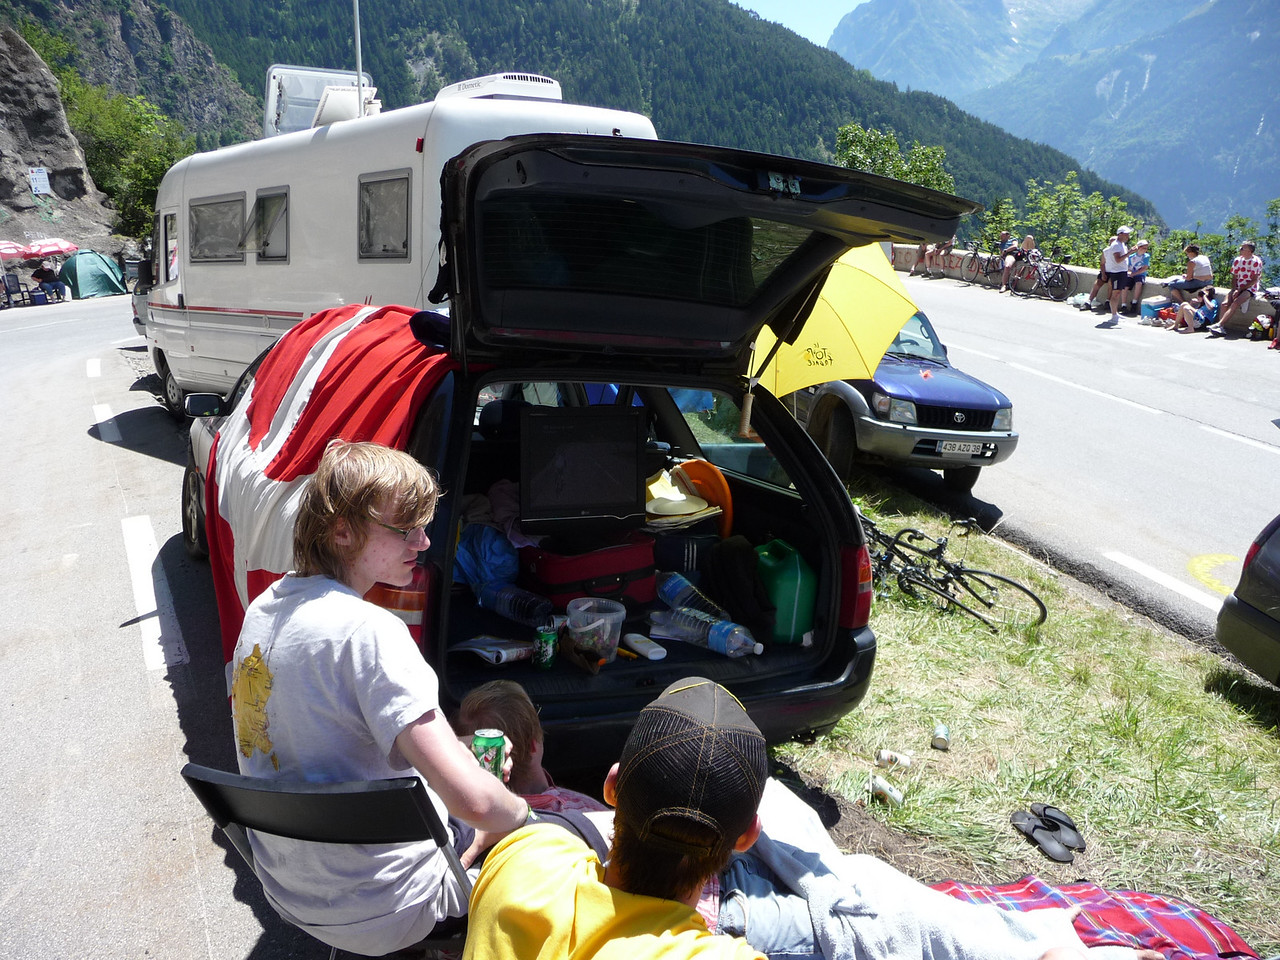 That camper had a TV in it as well. Location - Alpe d'Huez